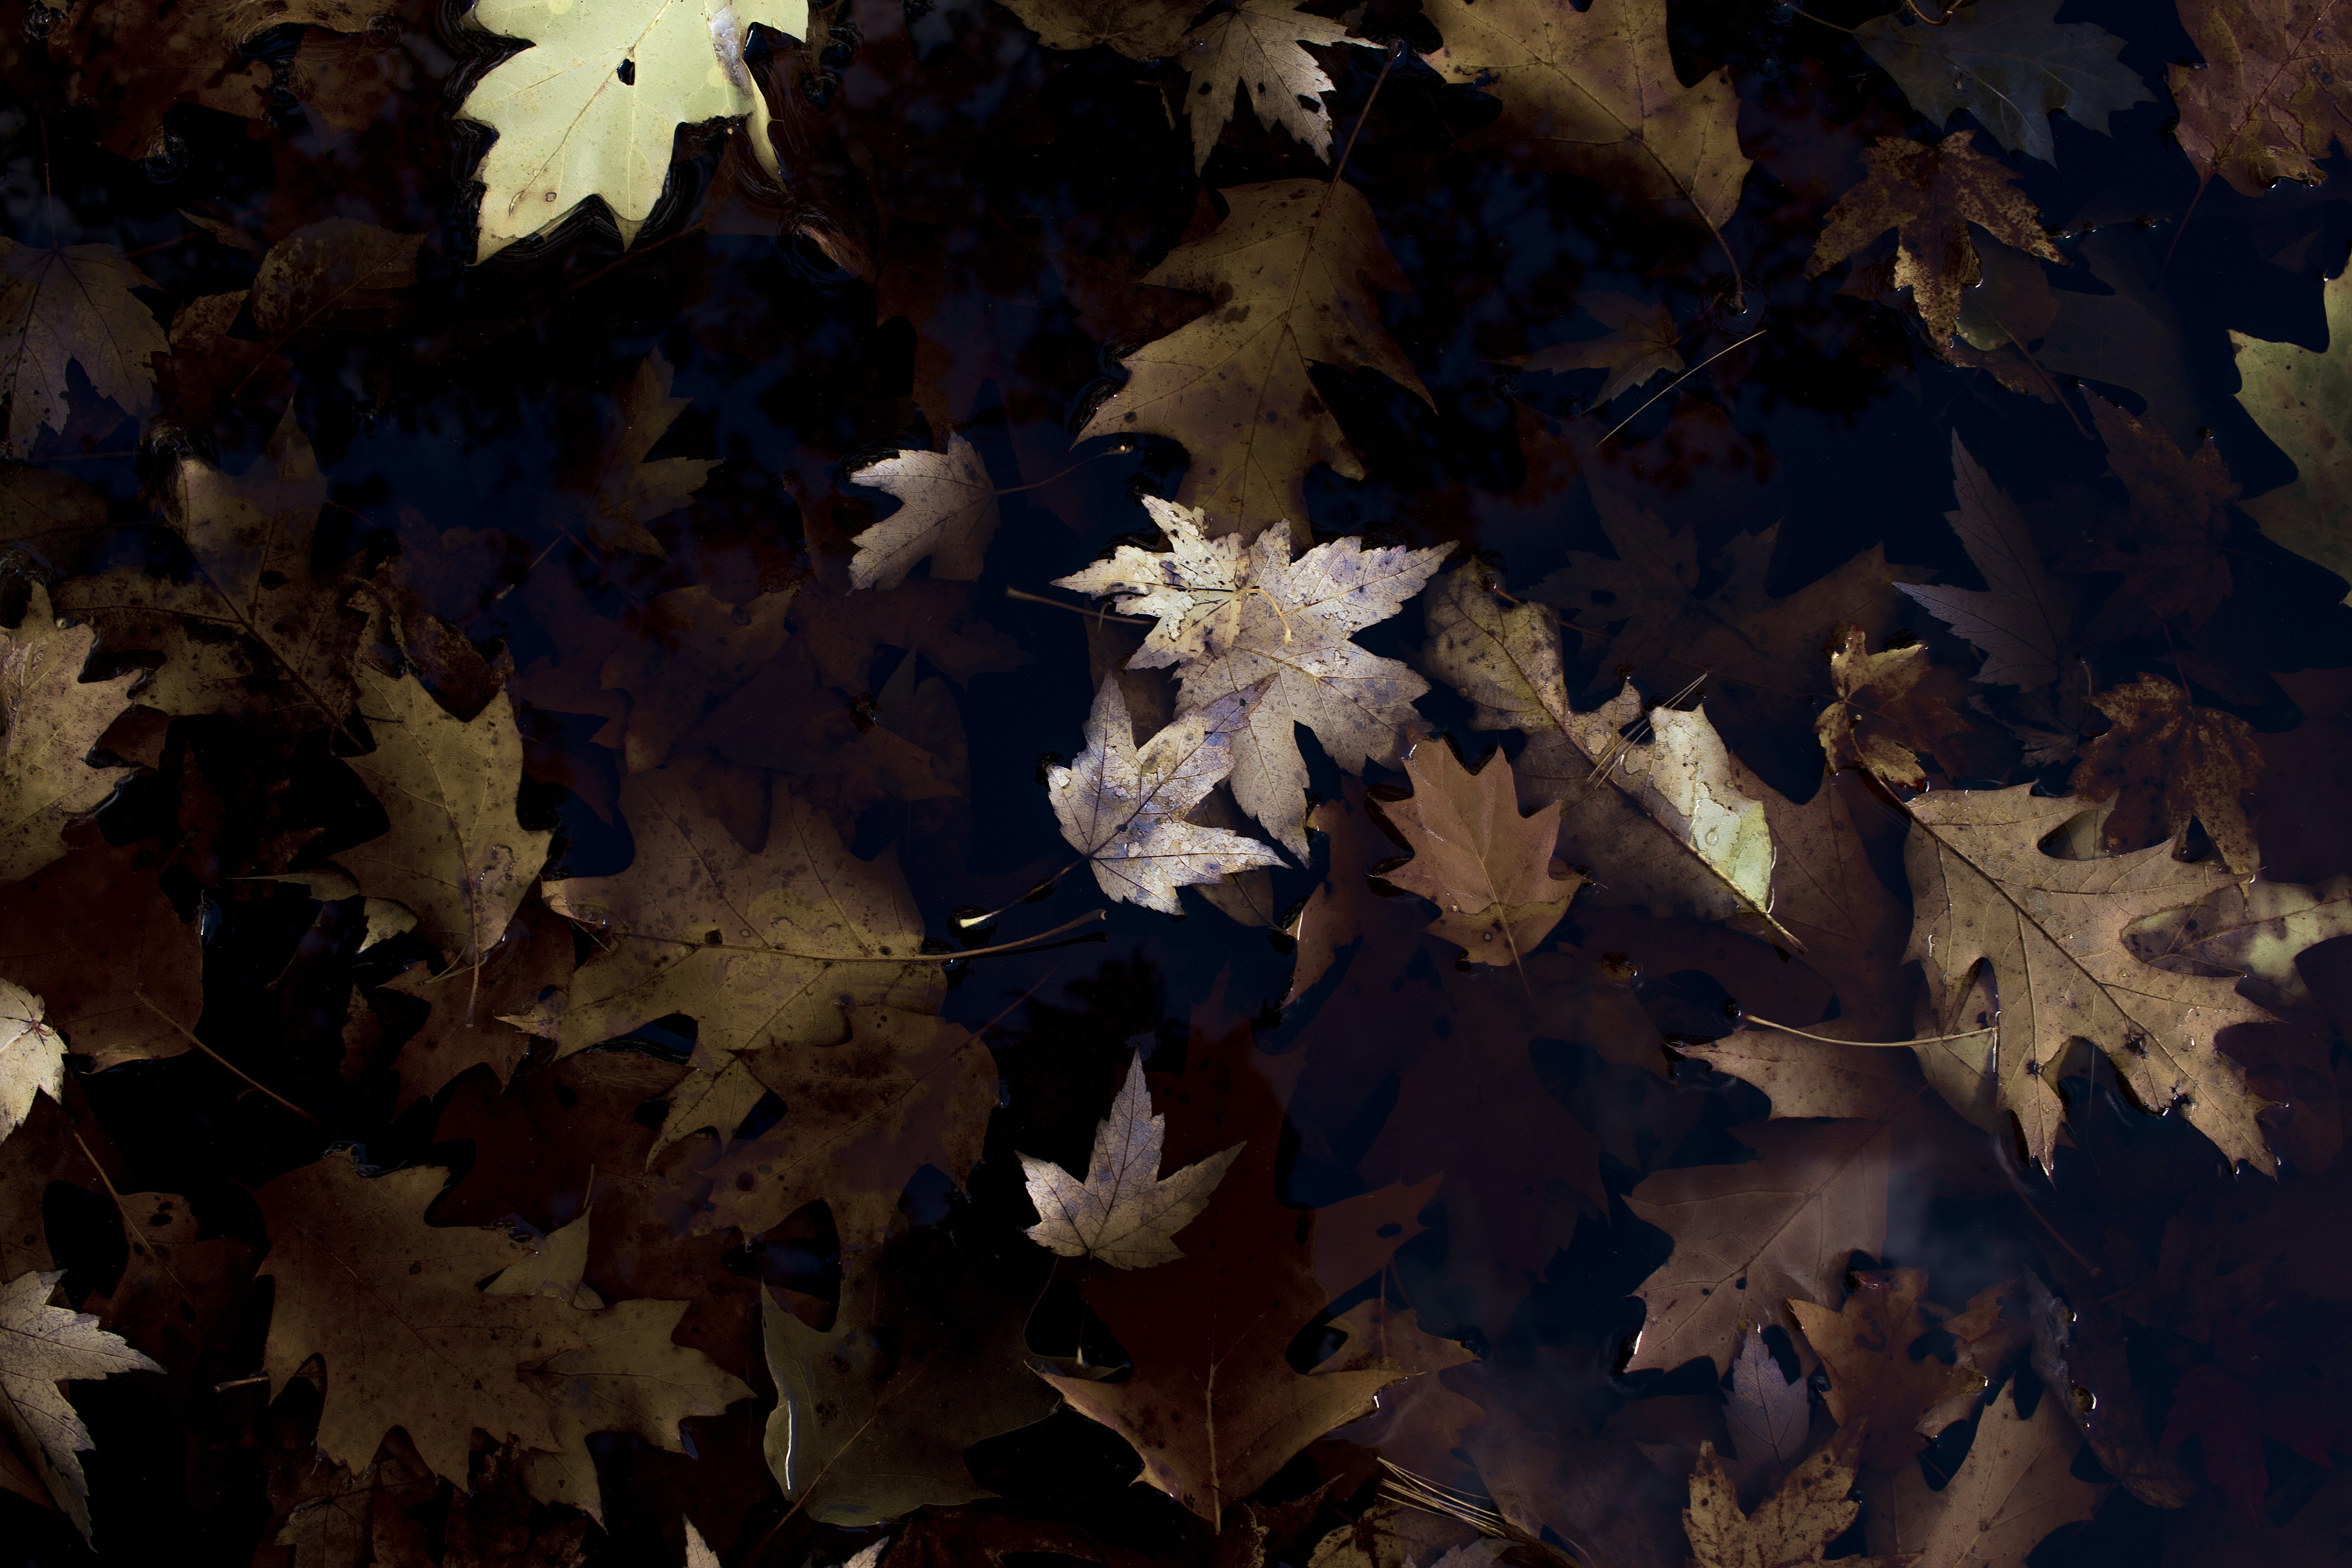 An overhead shot of brown autumn maple and oak leaves on the ground